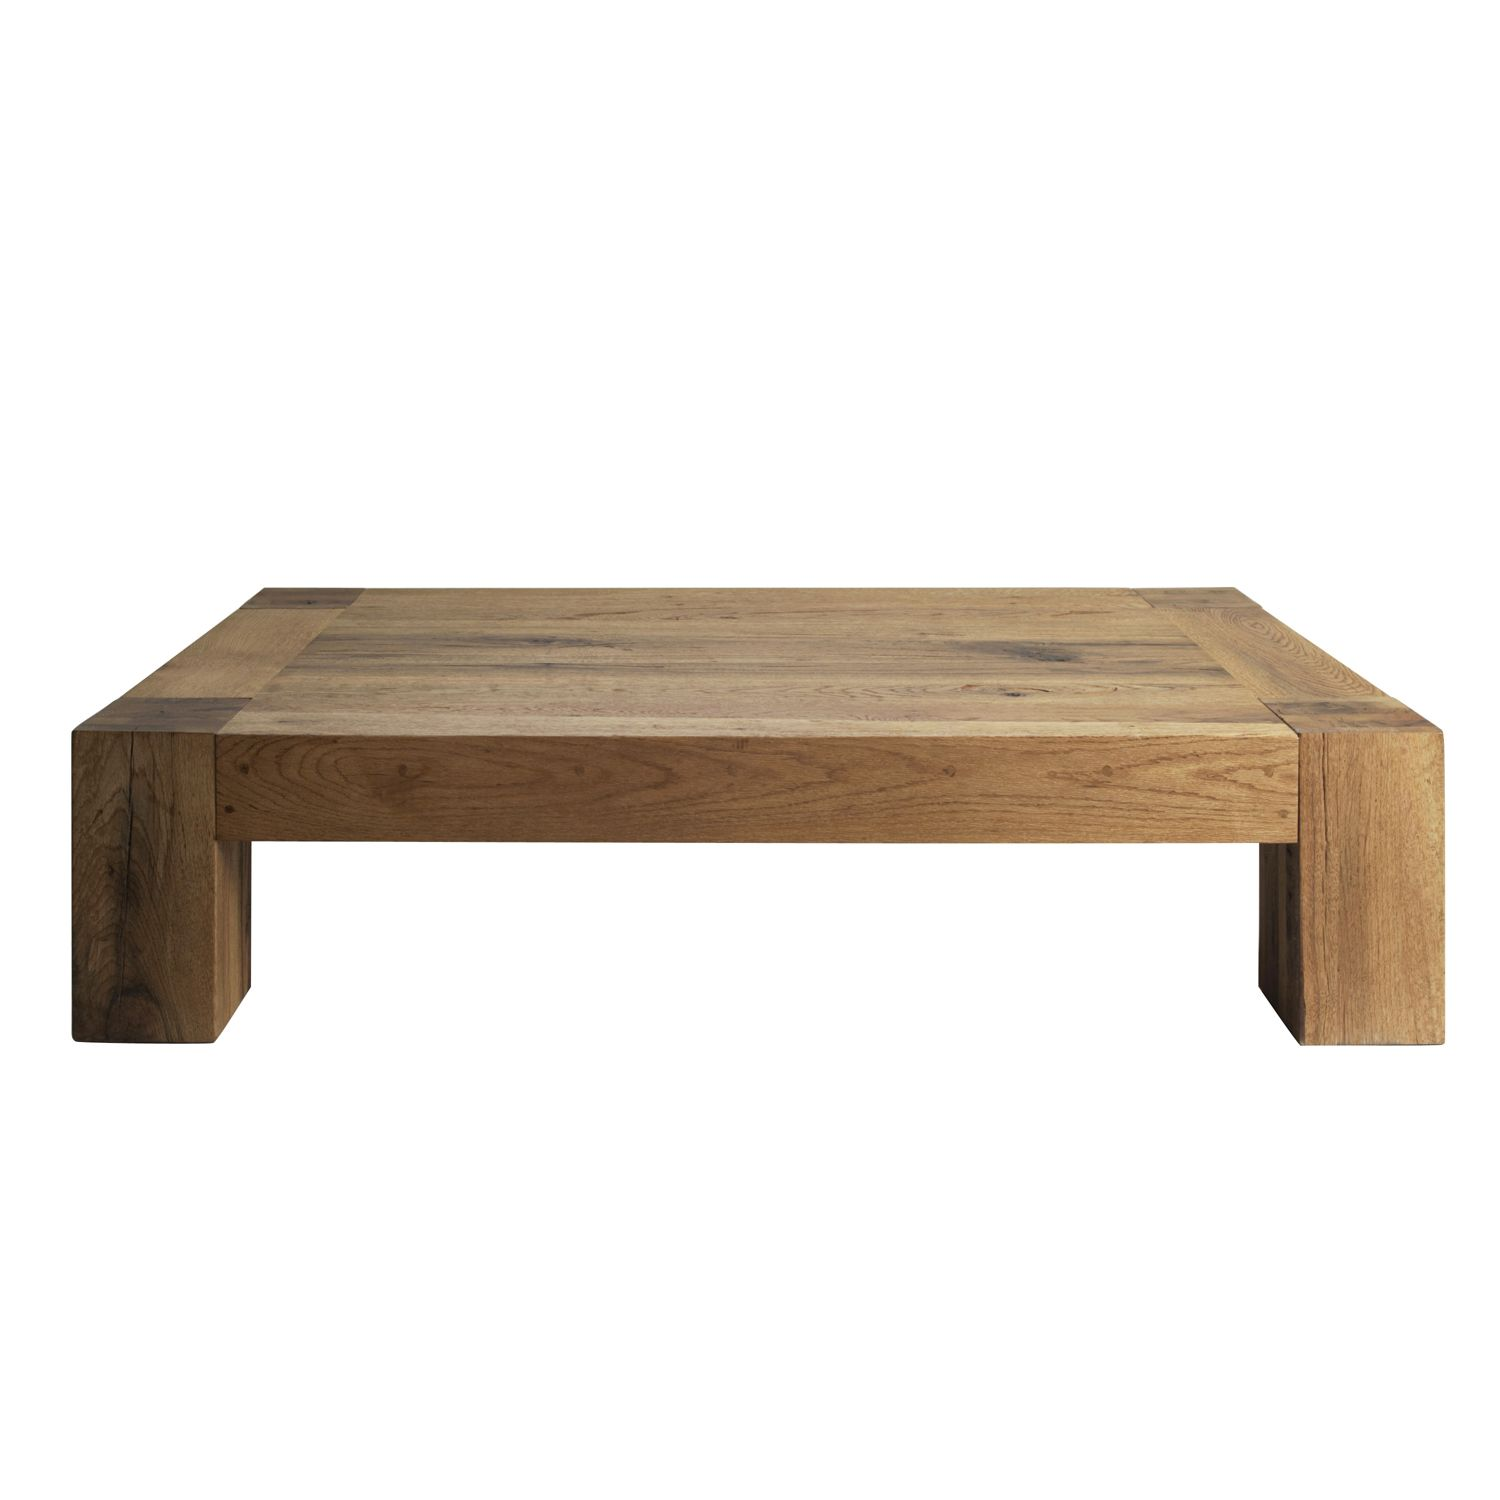 Heal s Umbrian Coffee Table Wild Oak decor Pinterest